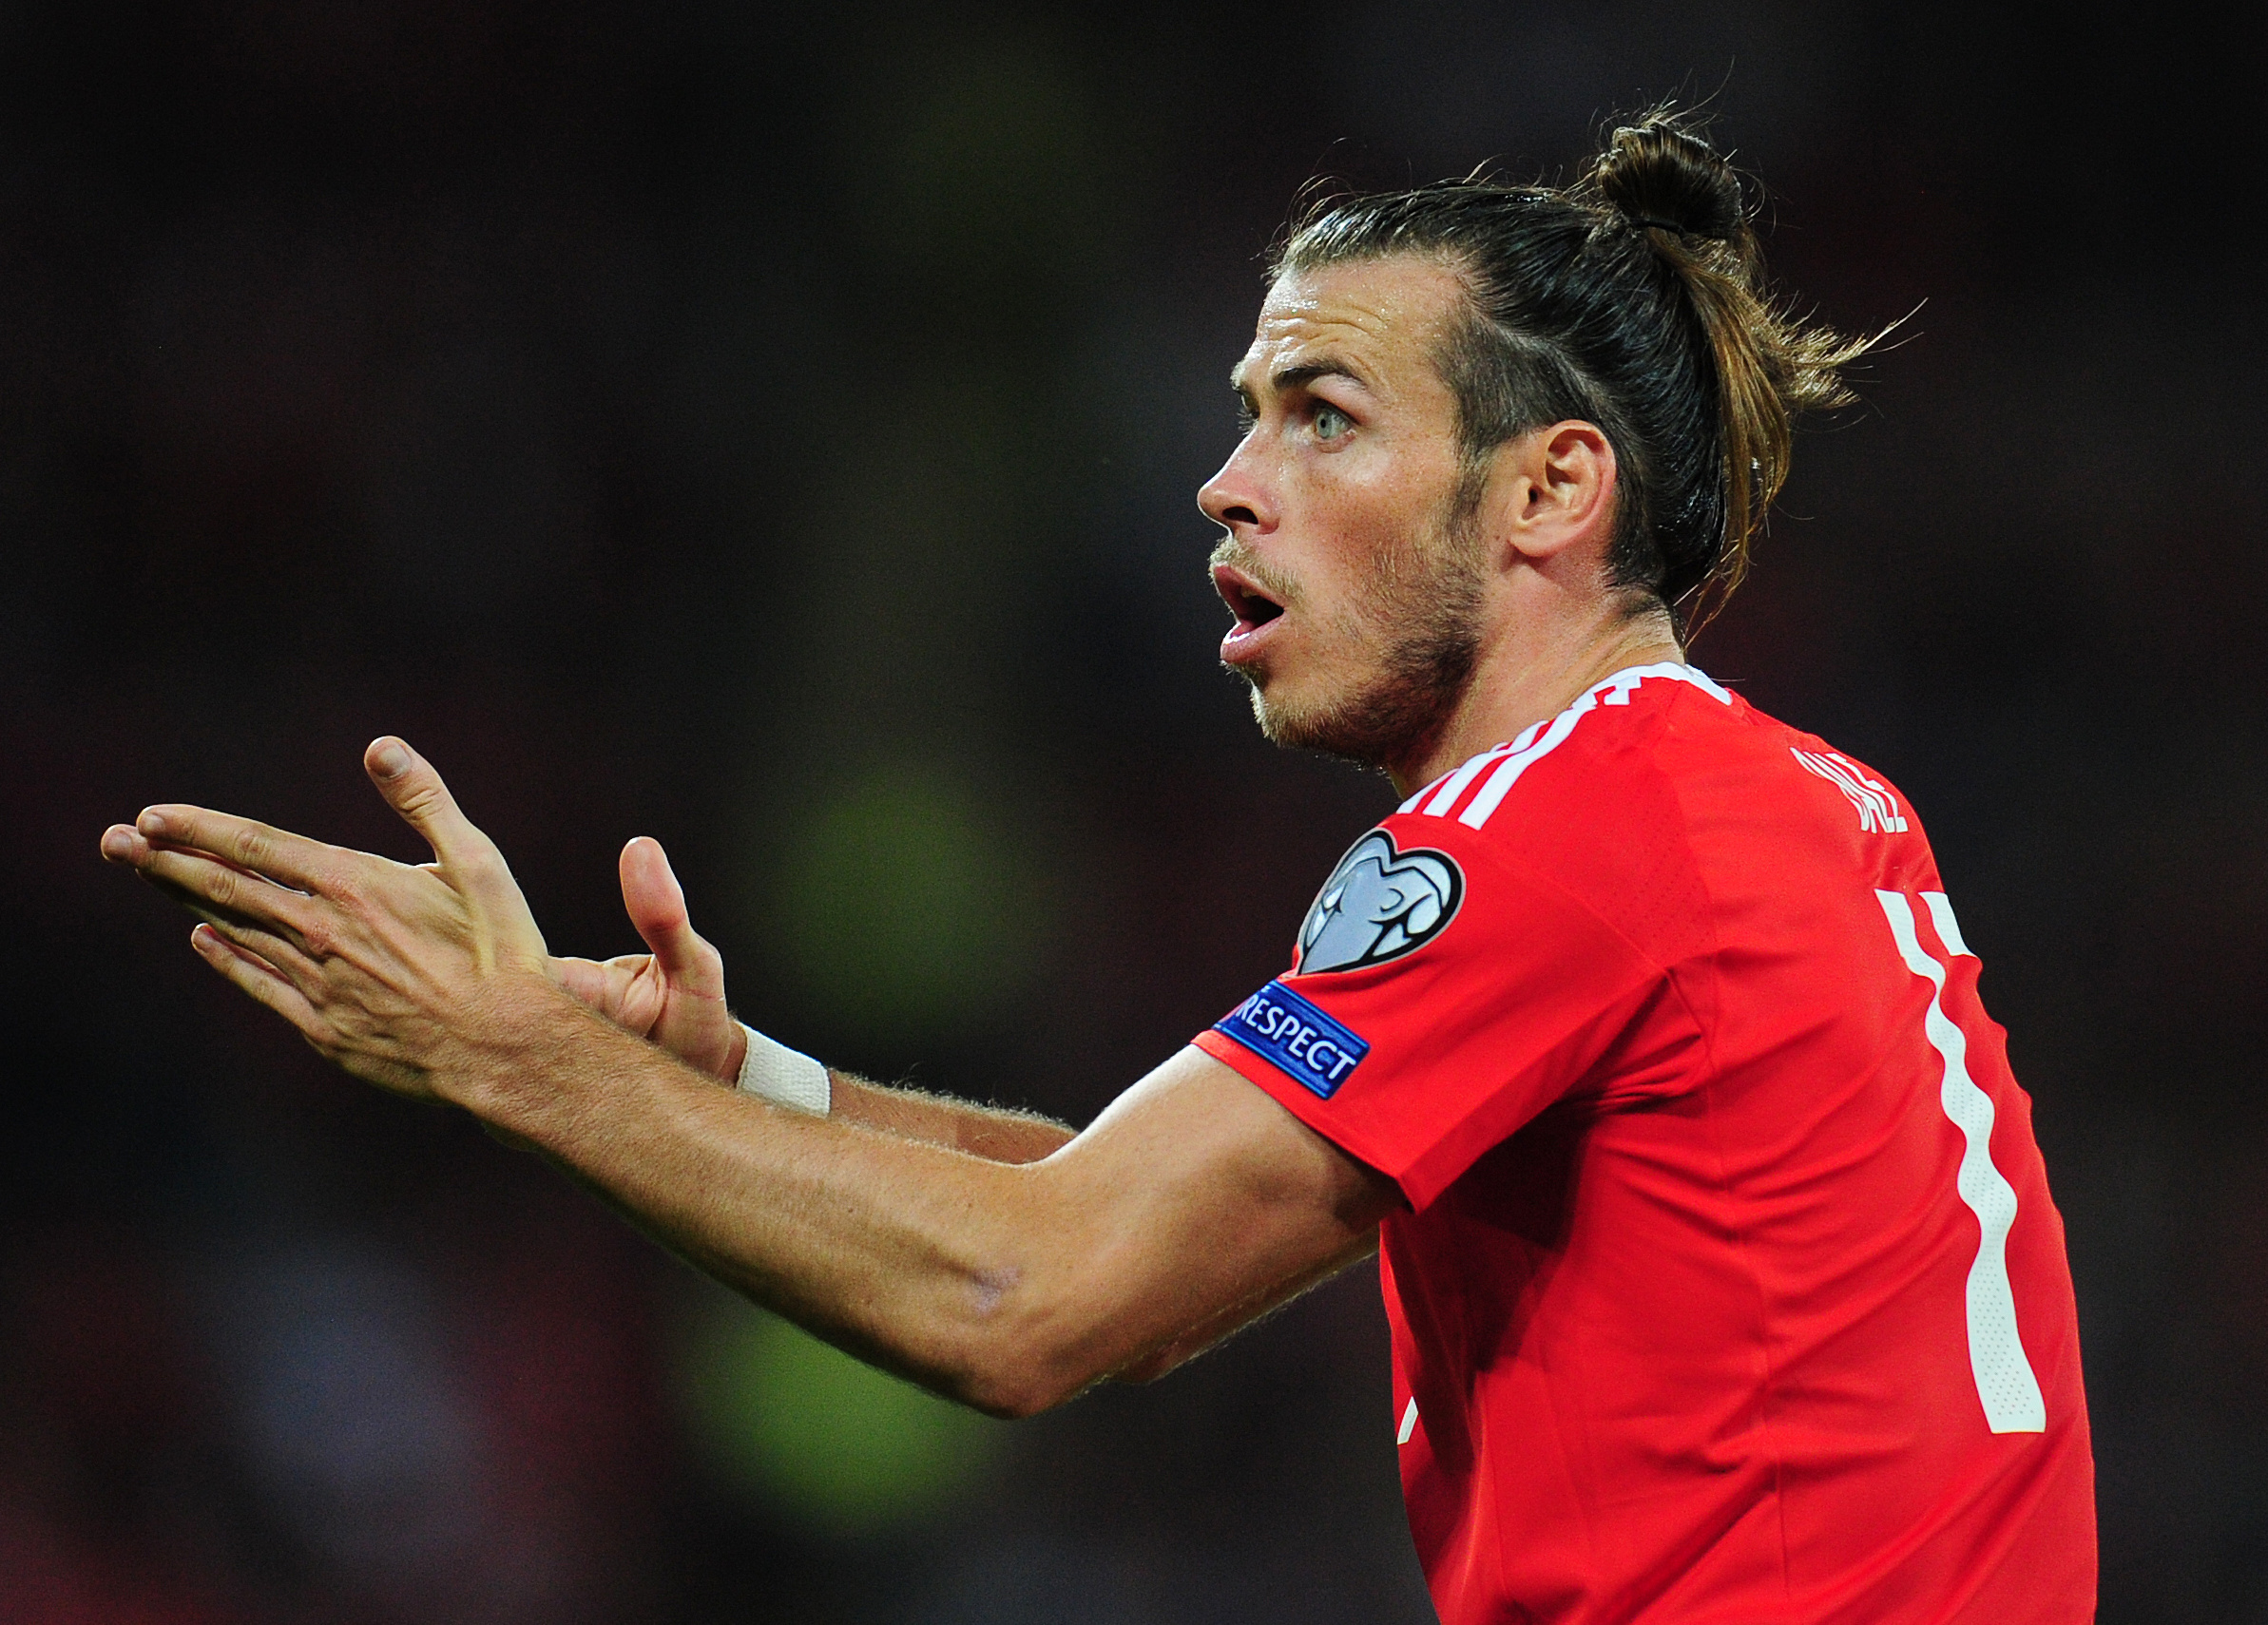 Missing Real Madrid s Gareth Bale Wales crashes out of World Cup